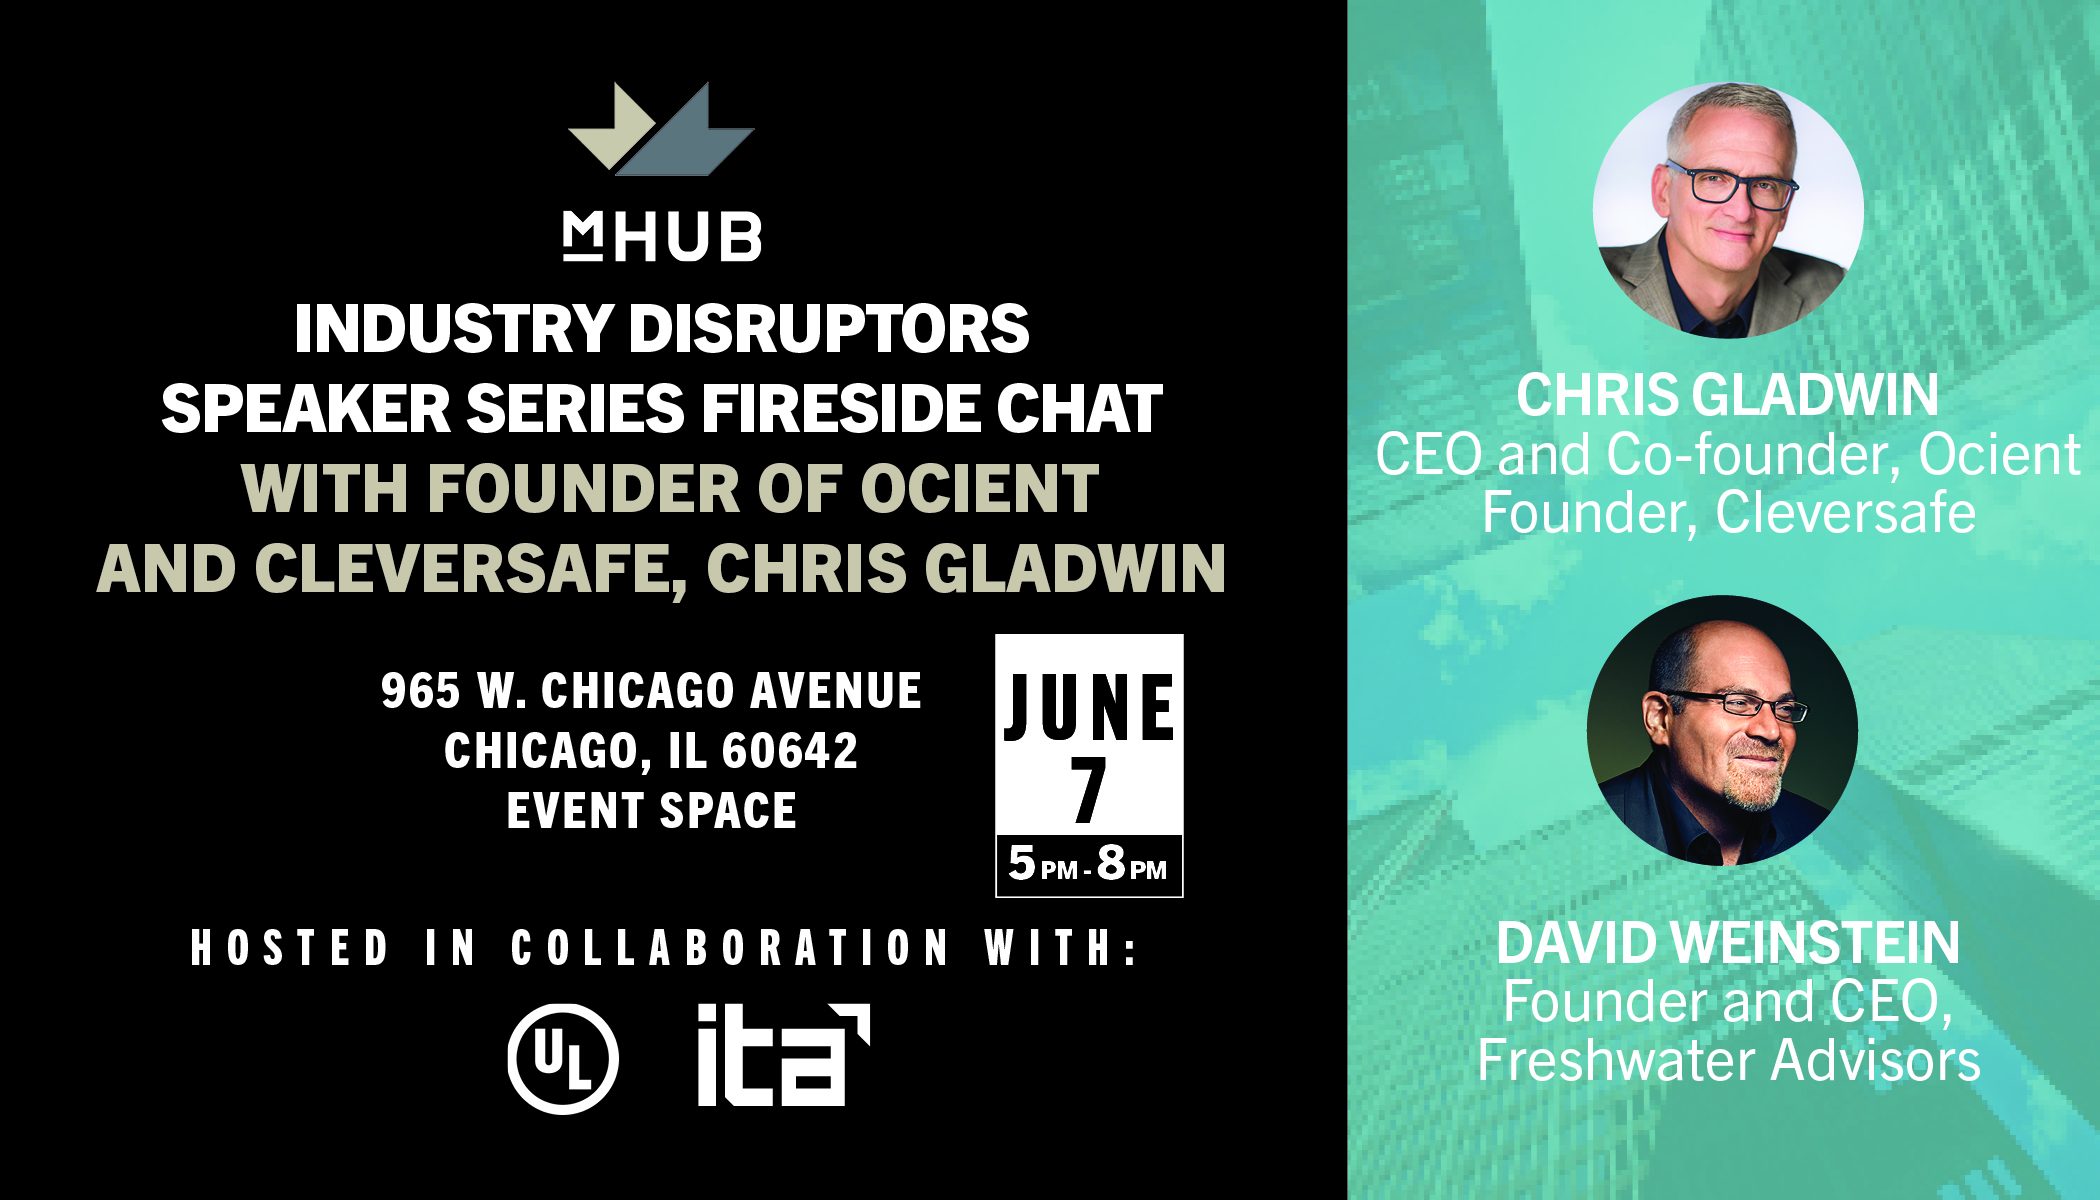 industry disruptors fireside chat with founder of ocient and